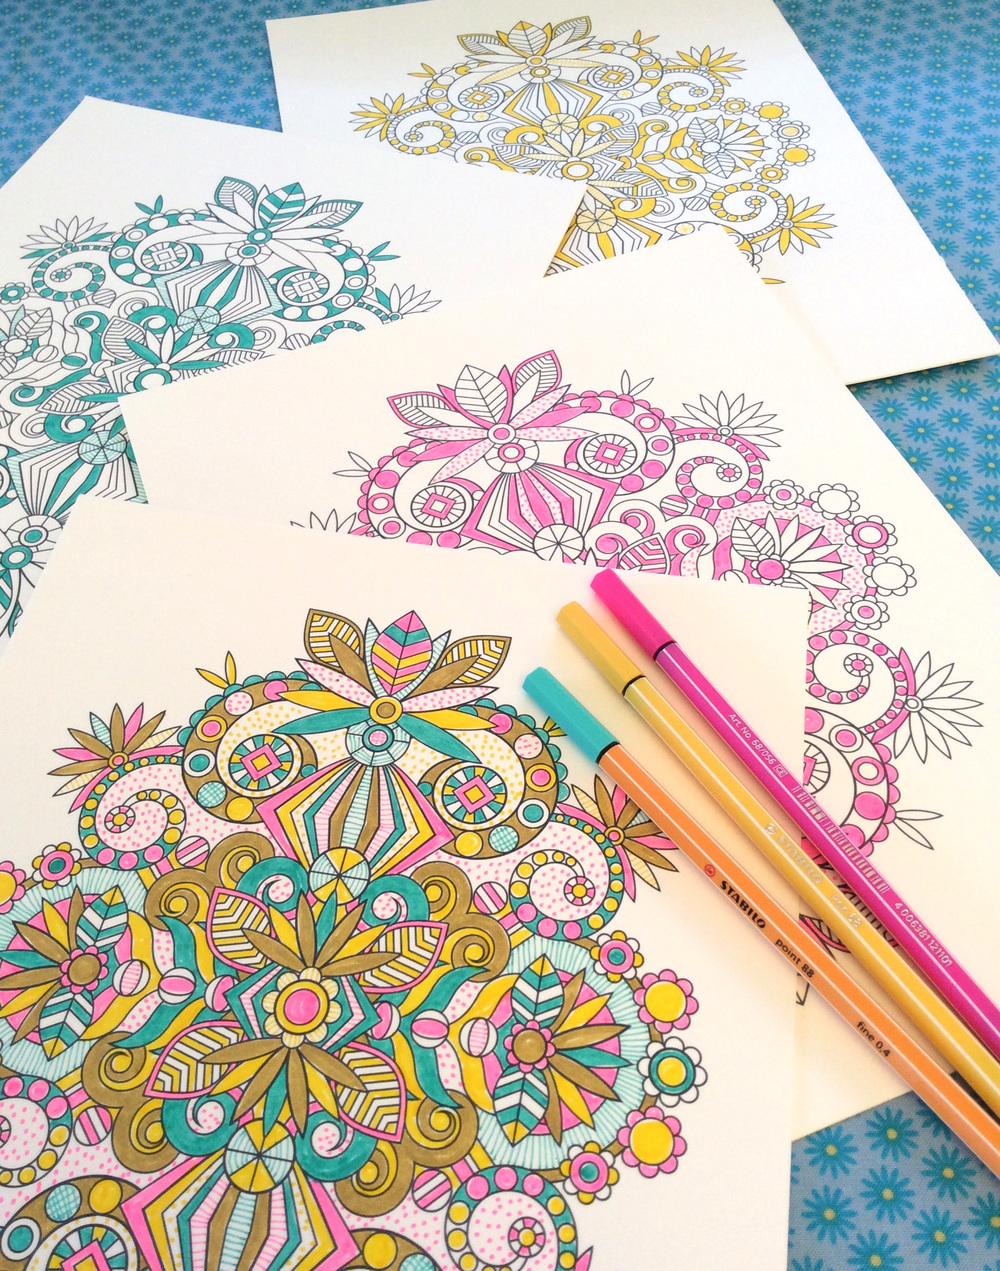 Coloring Page by Jenean Morrison for Design Mom